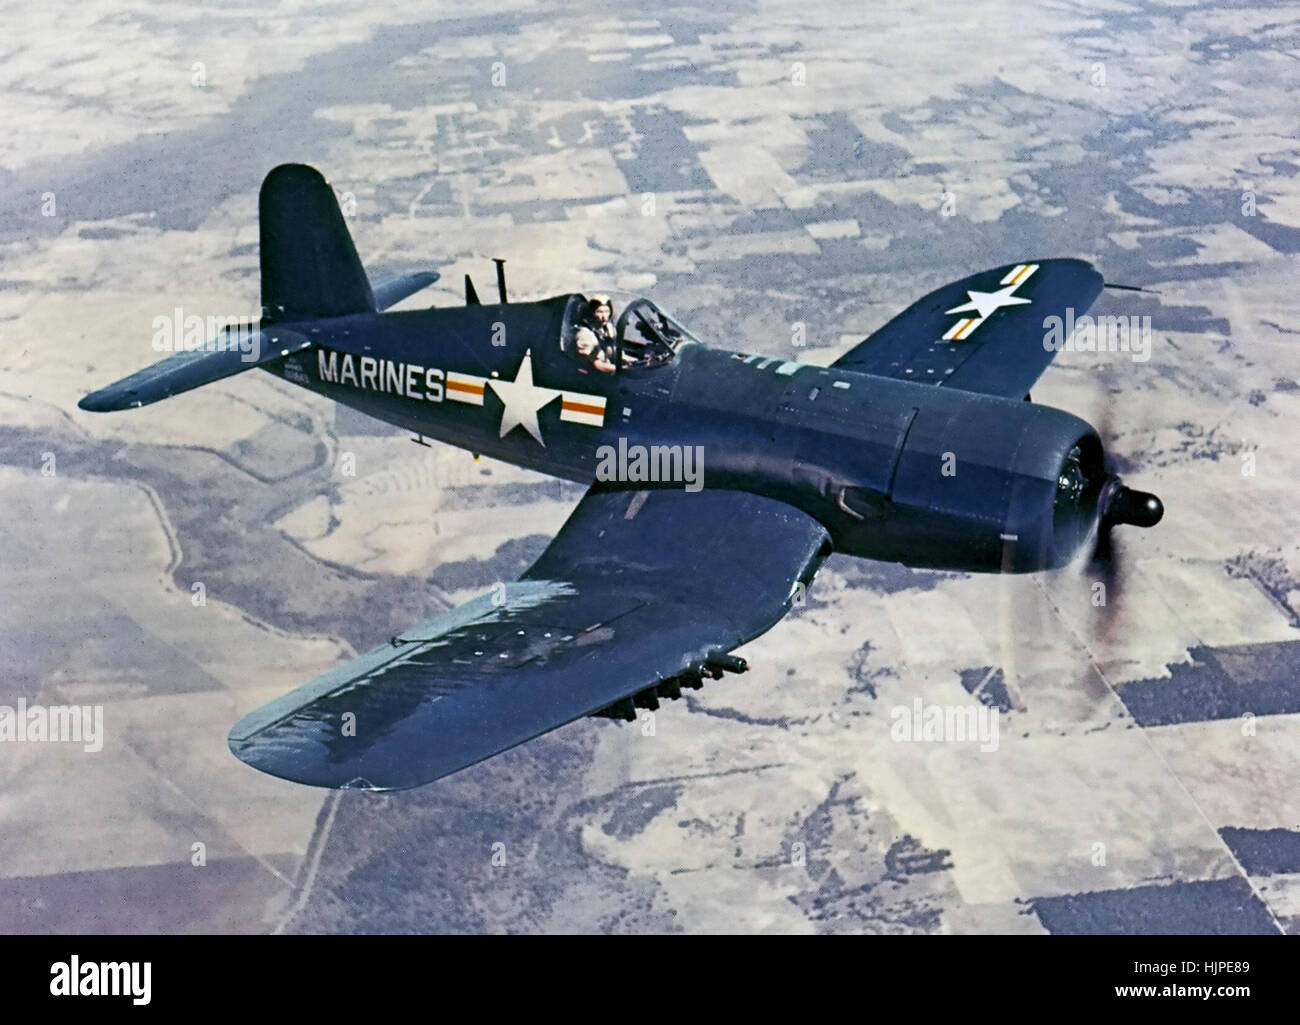 US MARINES VOUGHT CORSAIR  AU-1 in 1952 - Stock Image